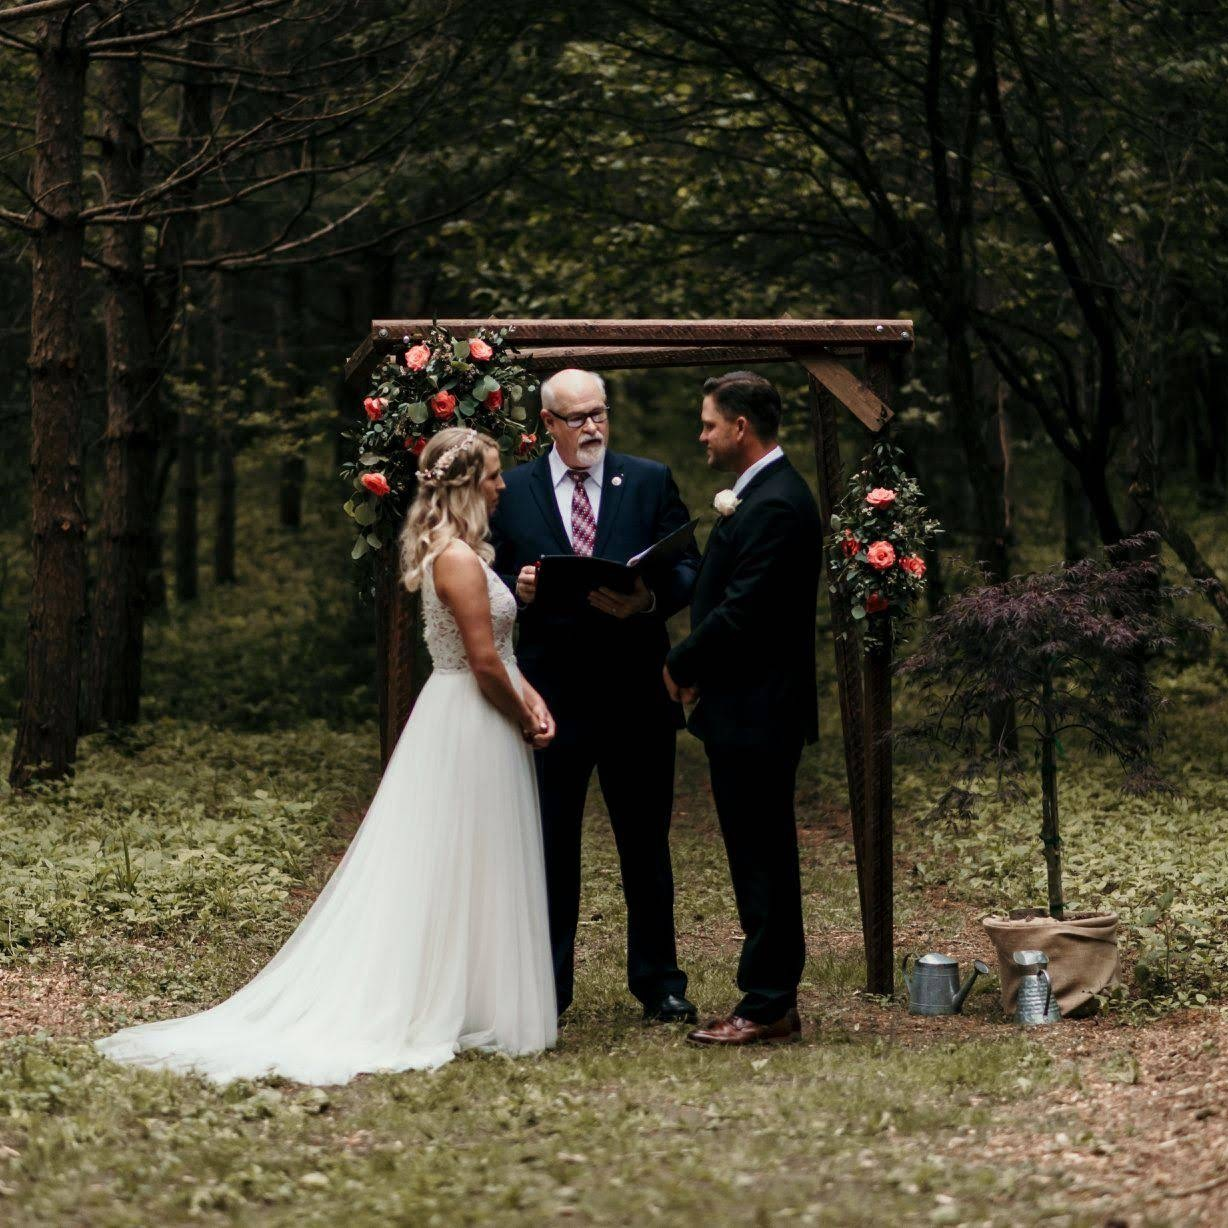 Bride and groom after their elopment deep in the woods - Milwaukee and Wisconsin Micro Wedding Planned by Natural Elegance LLC - Photo by Colorful Dreams 4U.jpg